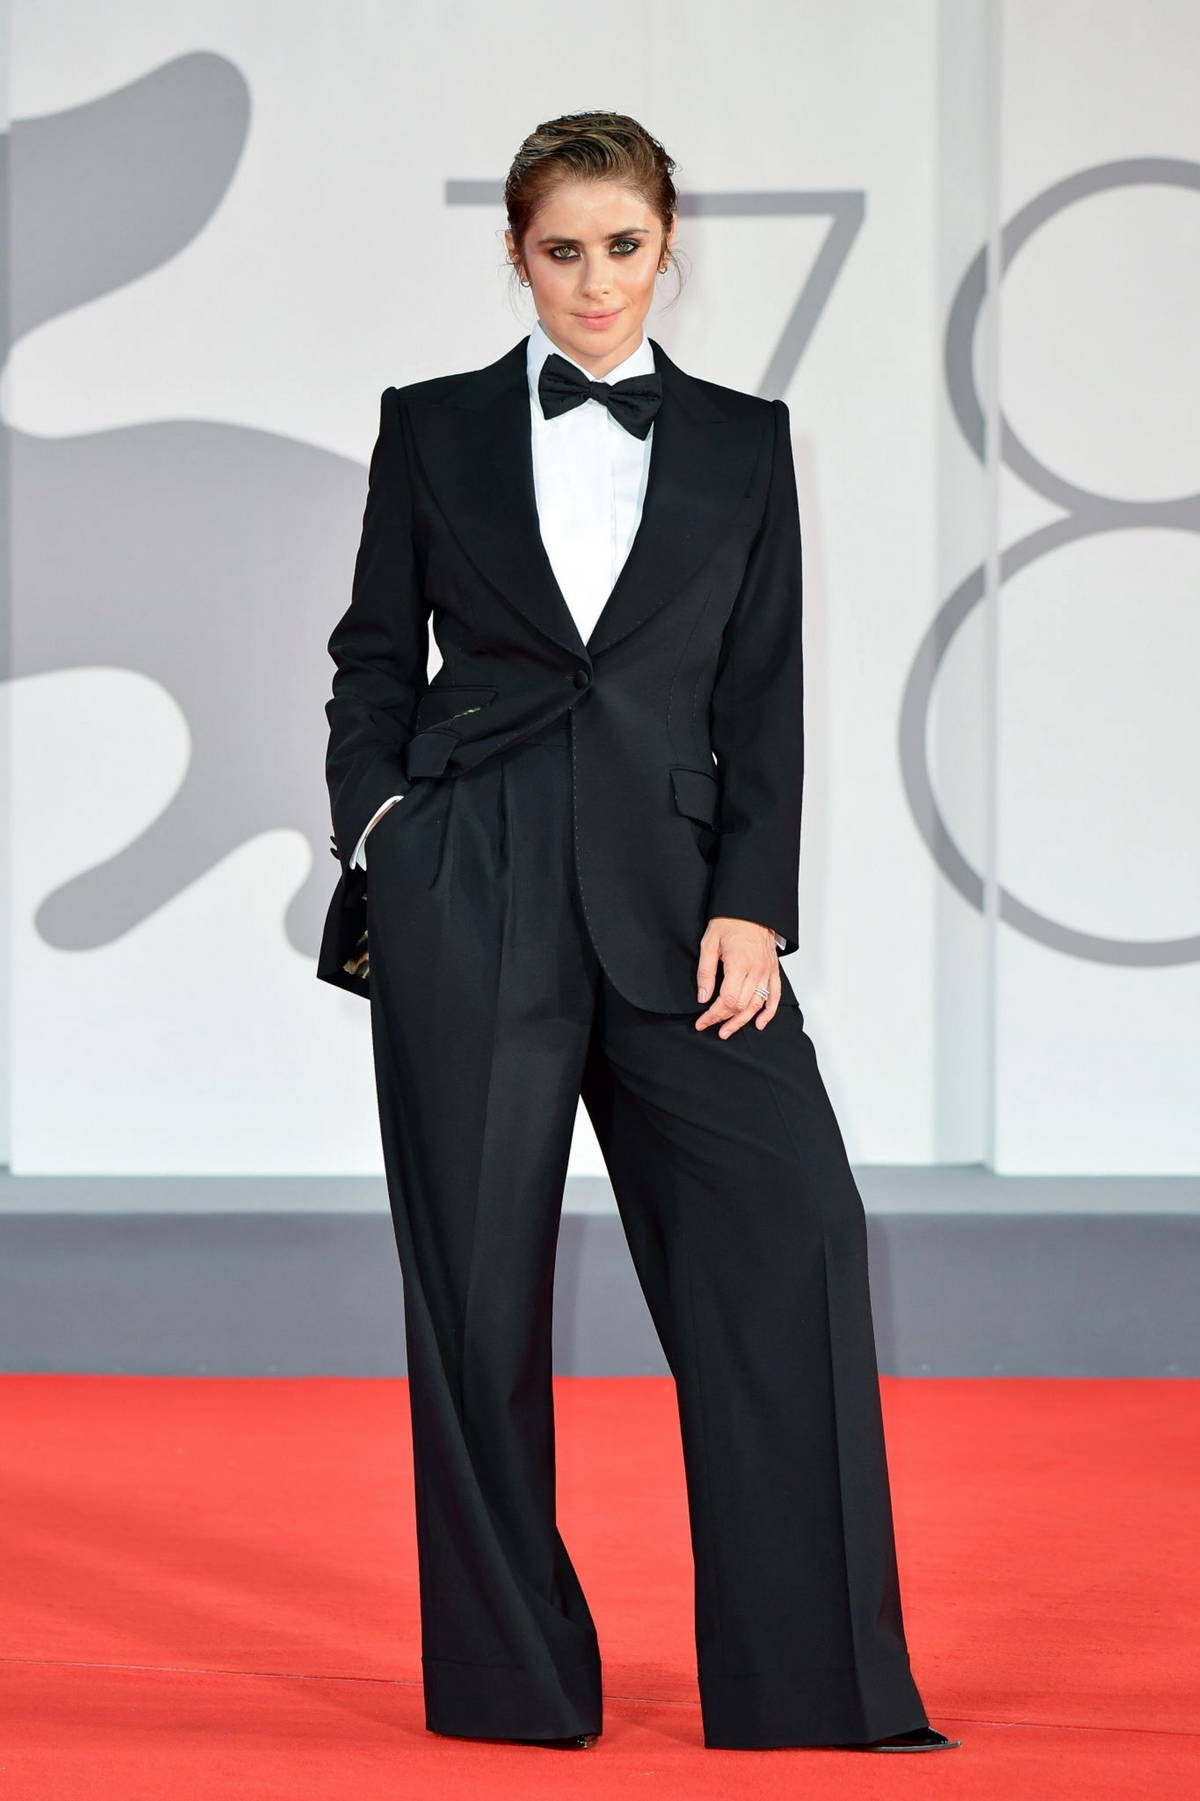 Greta Scarano attends the 'Filming Italy Movie Award' during the 78th Venice International Film Festival in Venice, Italy